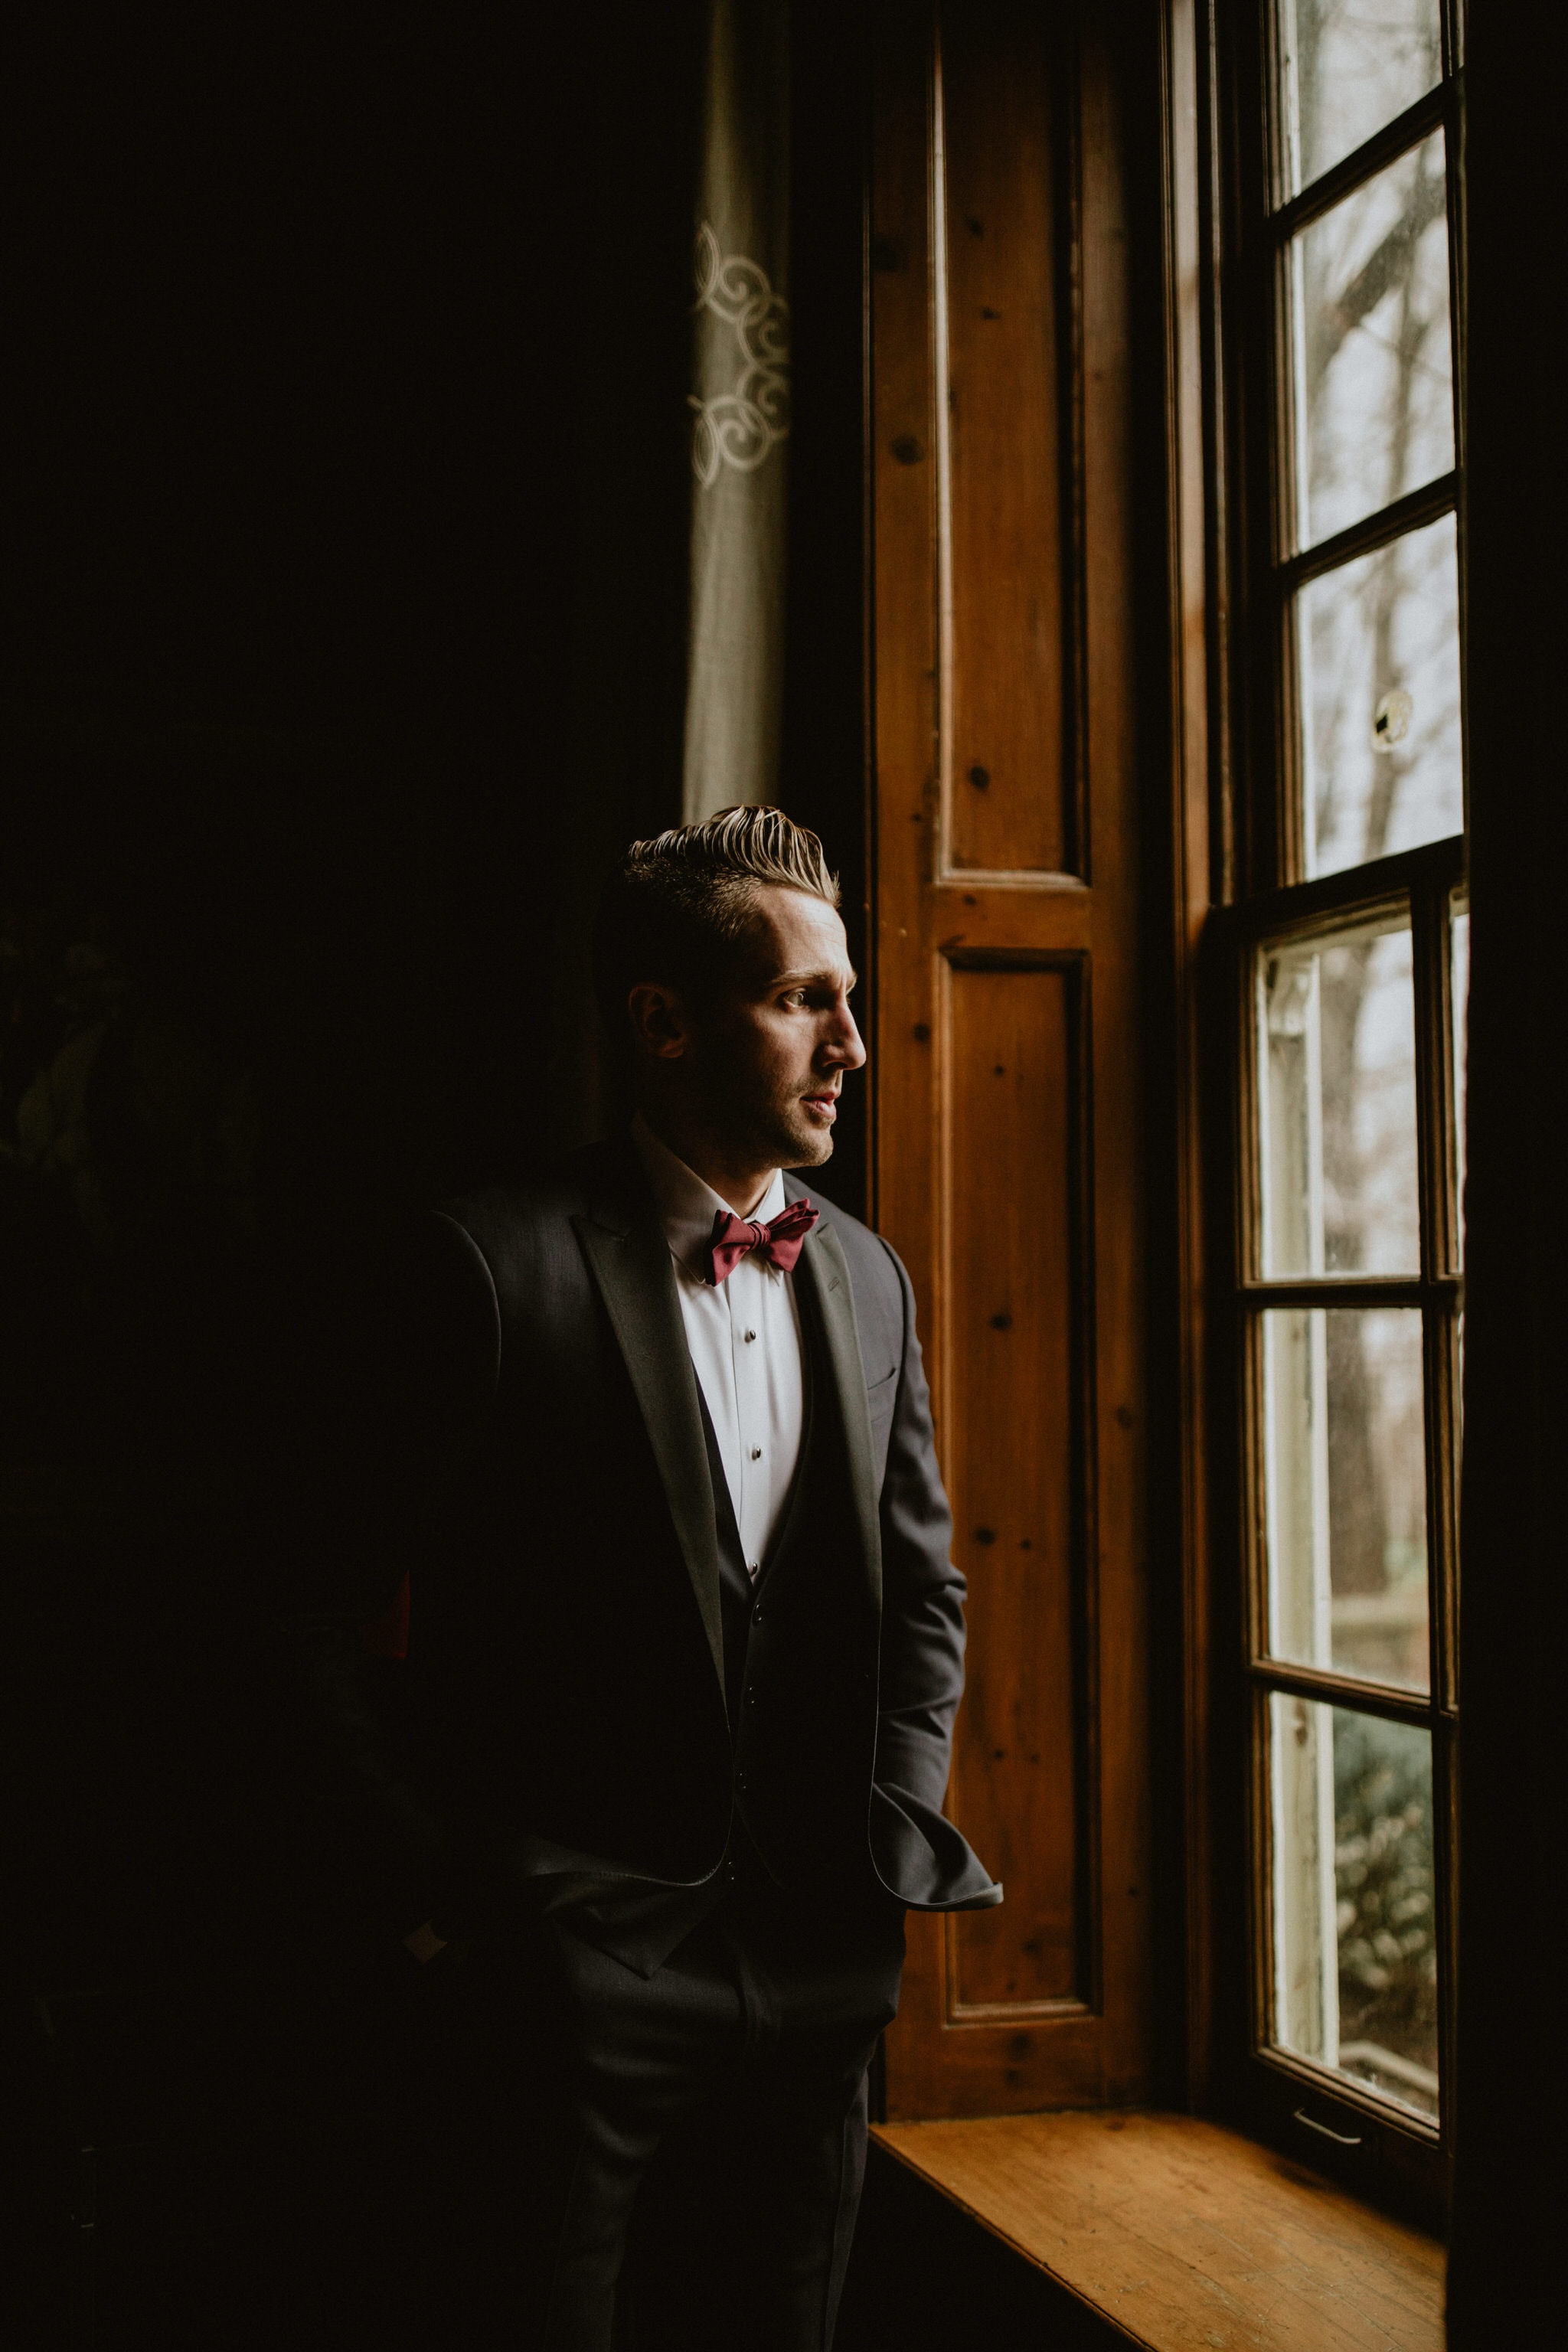 Groom waiting at the window at Graydon Hall Manor Wedding in Toronto